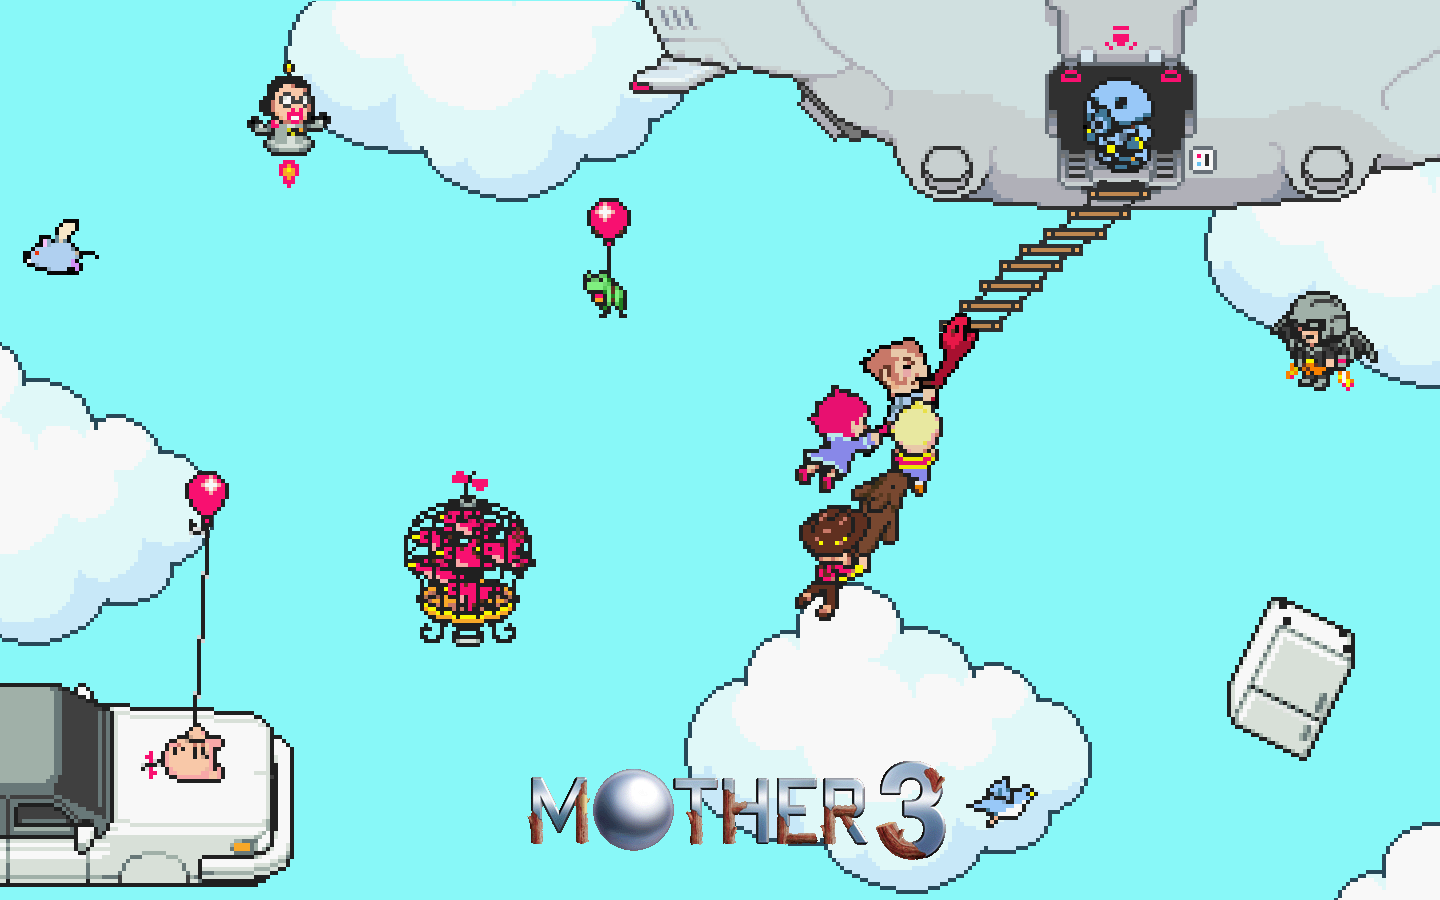 mother 3 1680x1050 wallpapers earthbound 2 mother 3